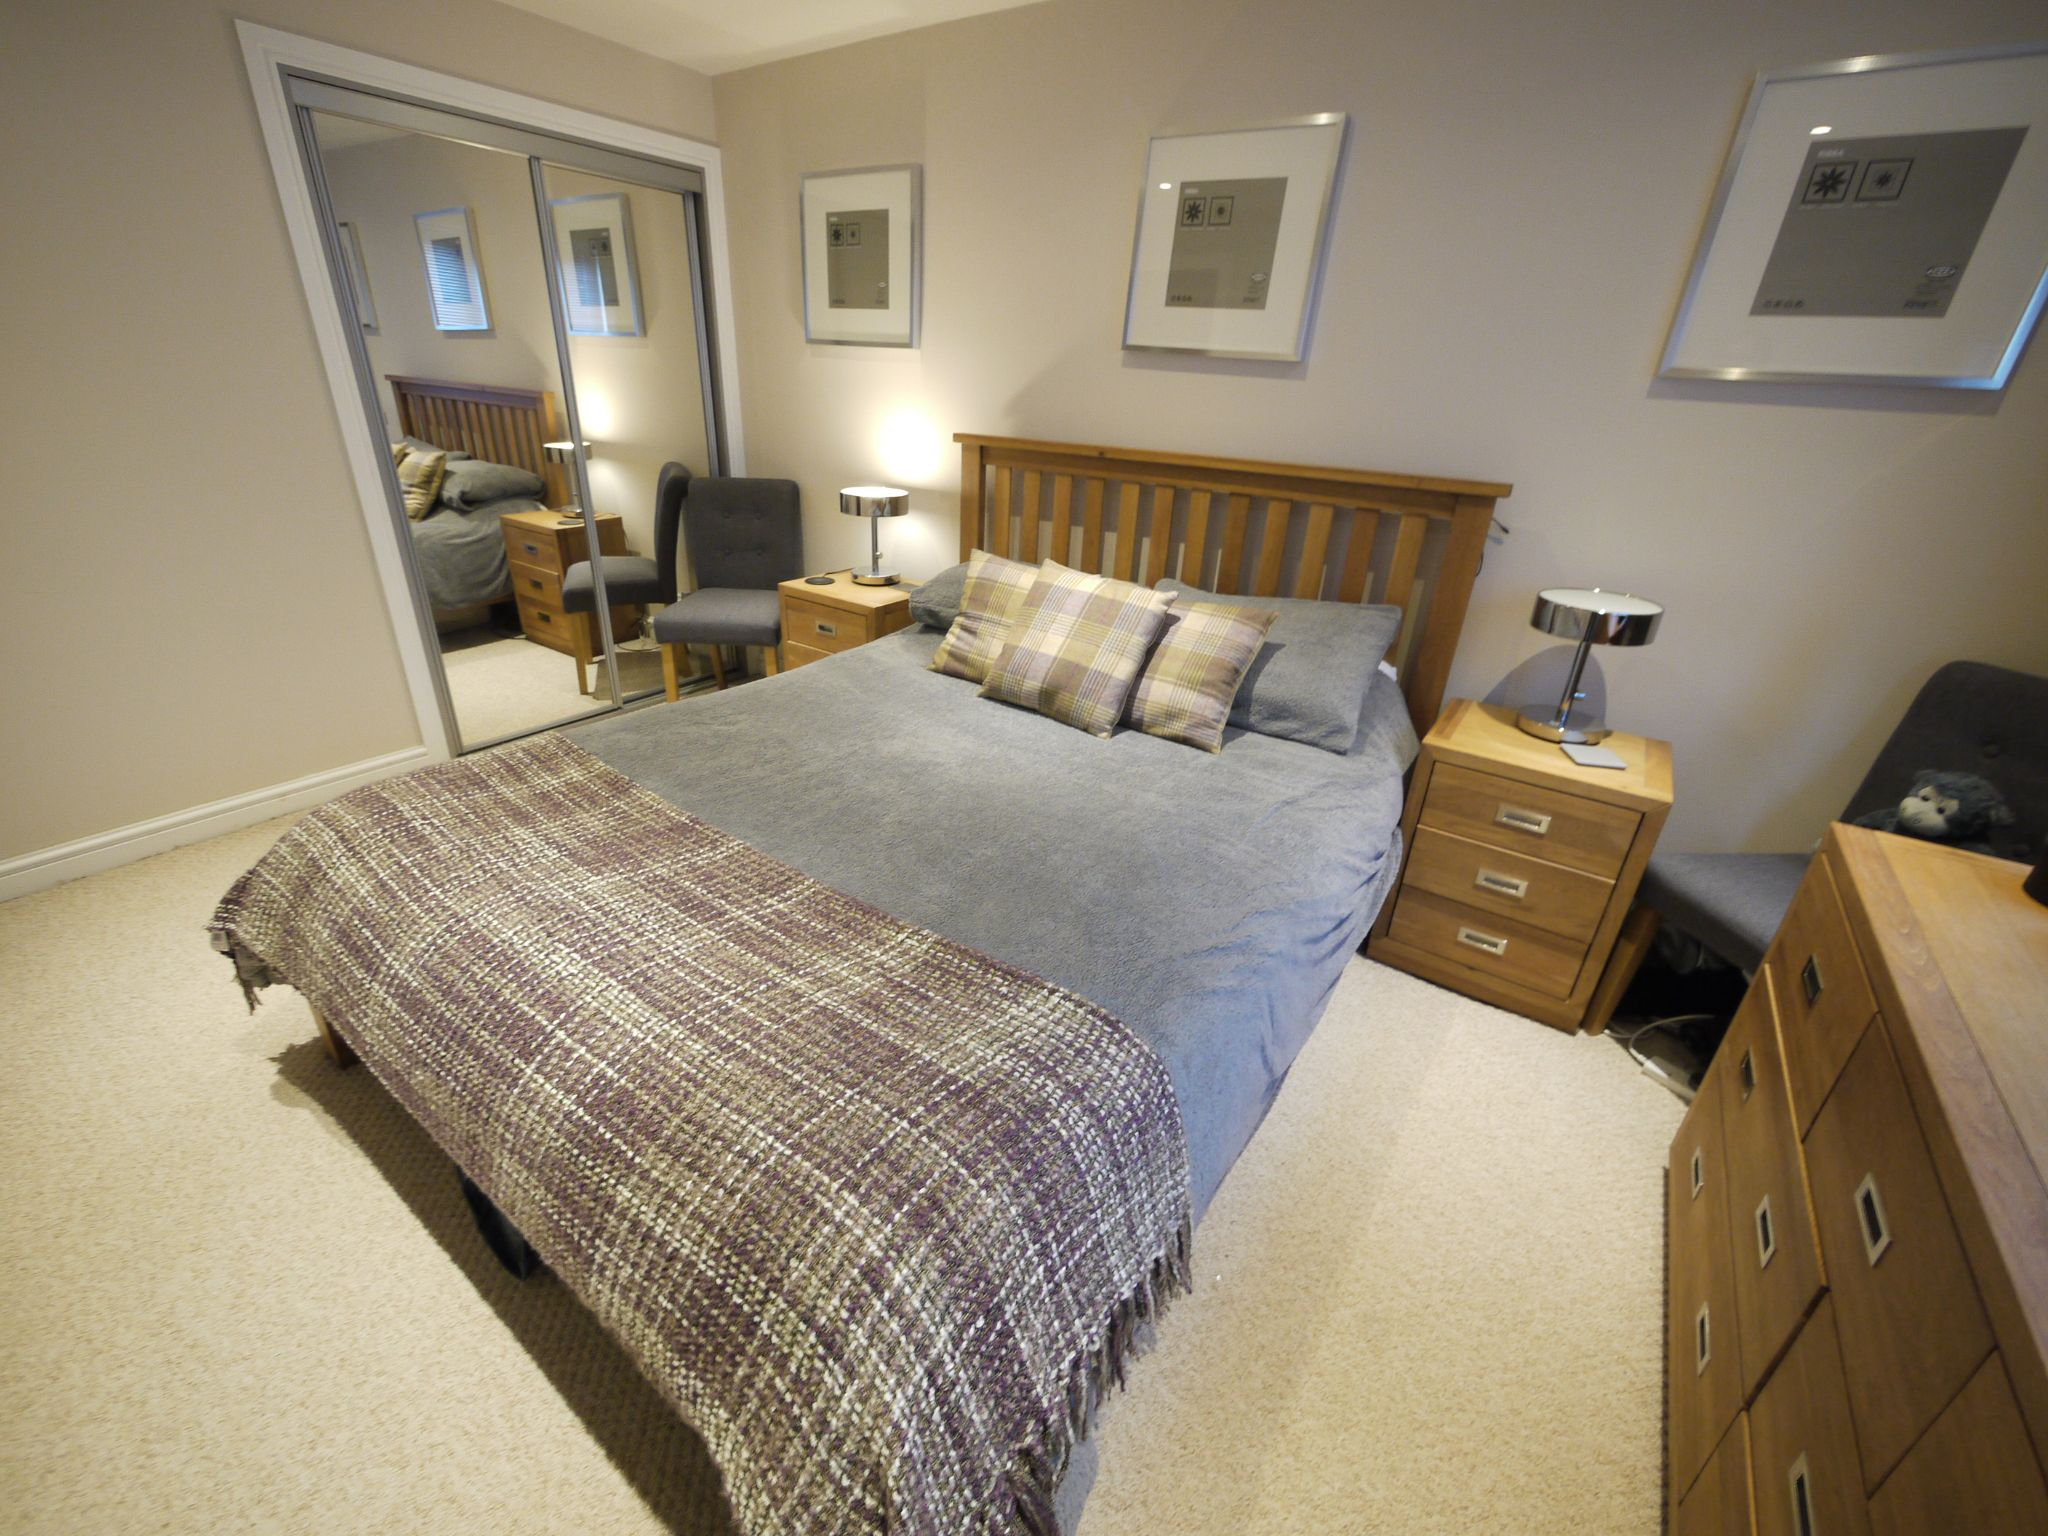 3 bedroom detached house SSTC in Brighouse - Photograph 4.